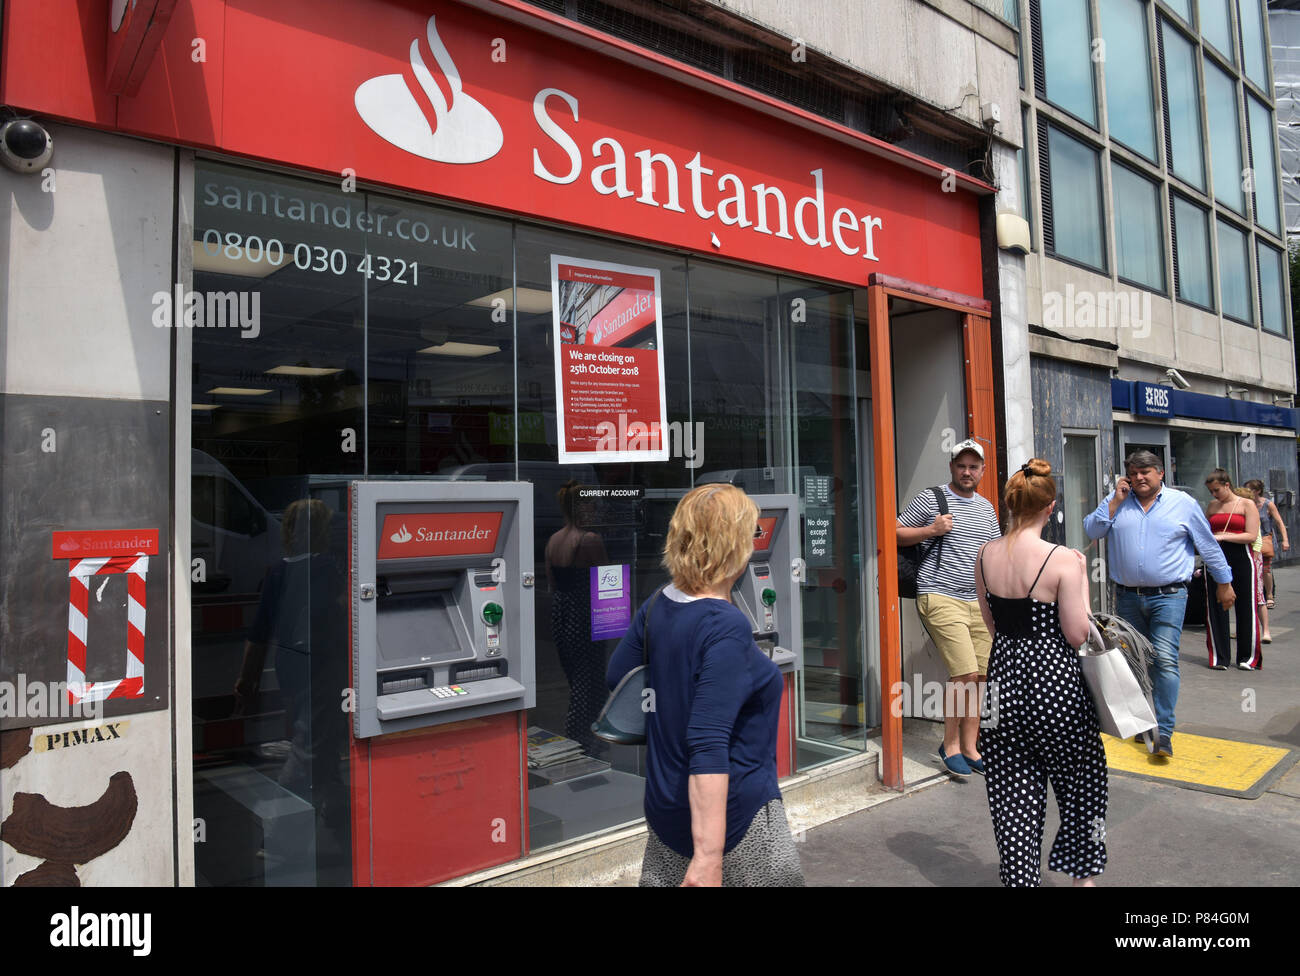 People walk past the Santander bank in Notting Hill, London, next to RBS. As part of a programme of closures this branch will close in October 2018. - Stock Image